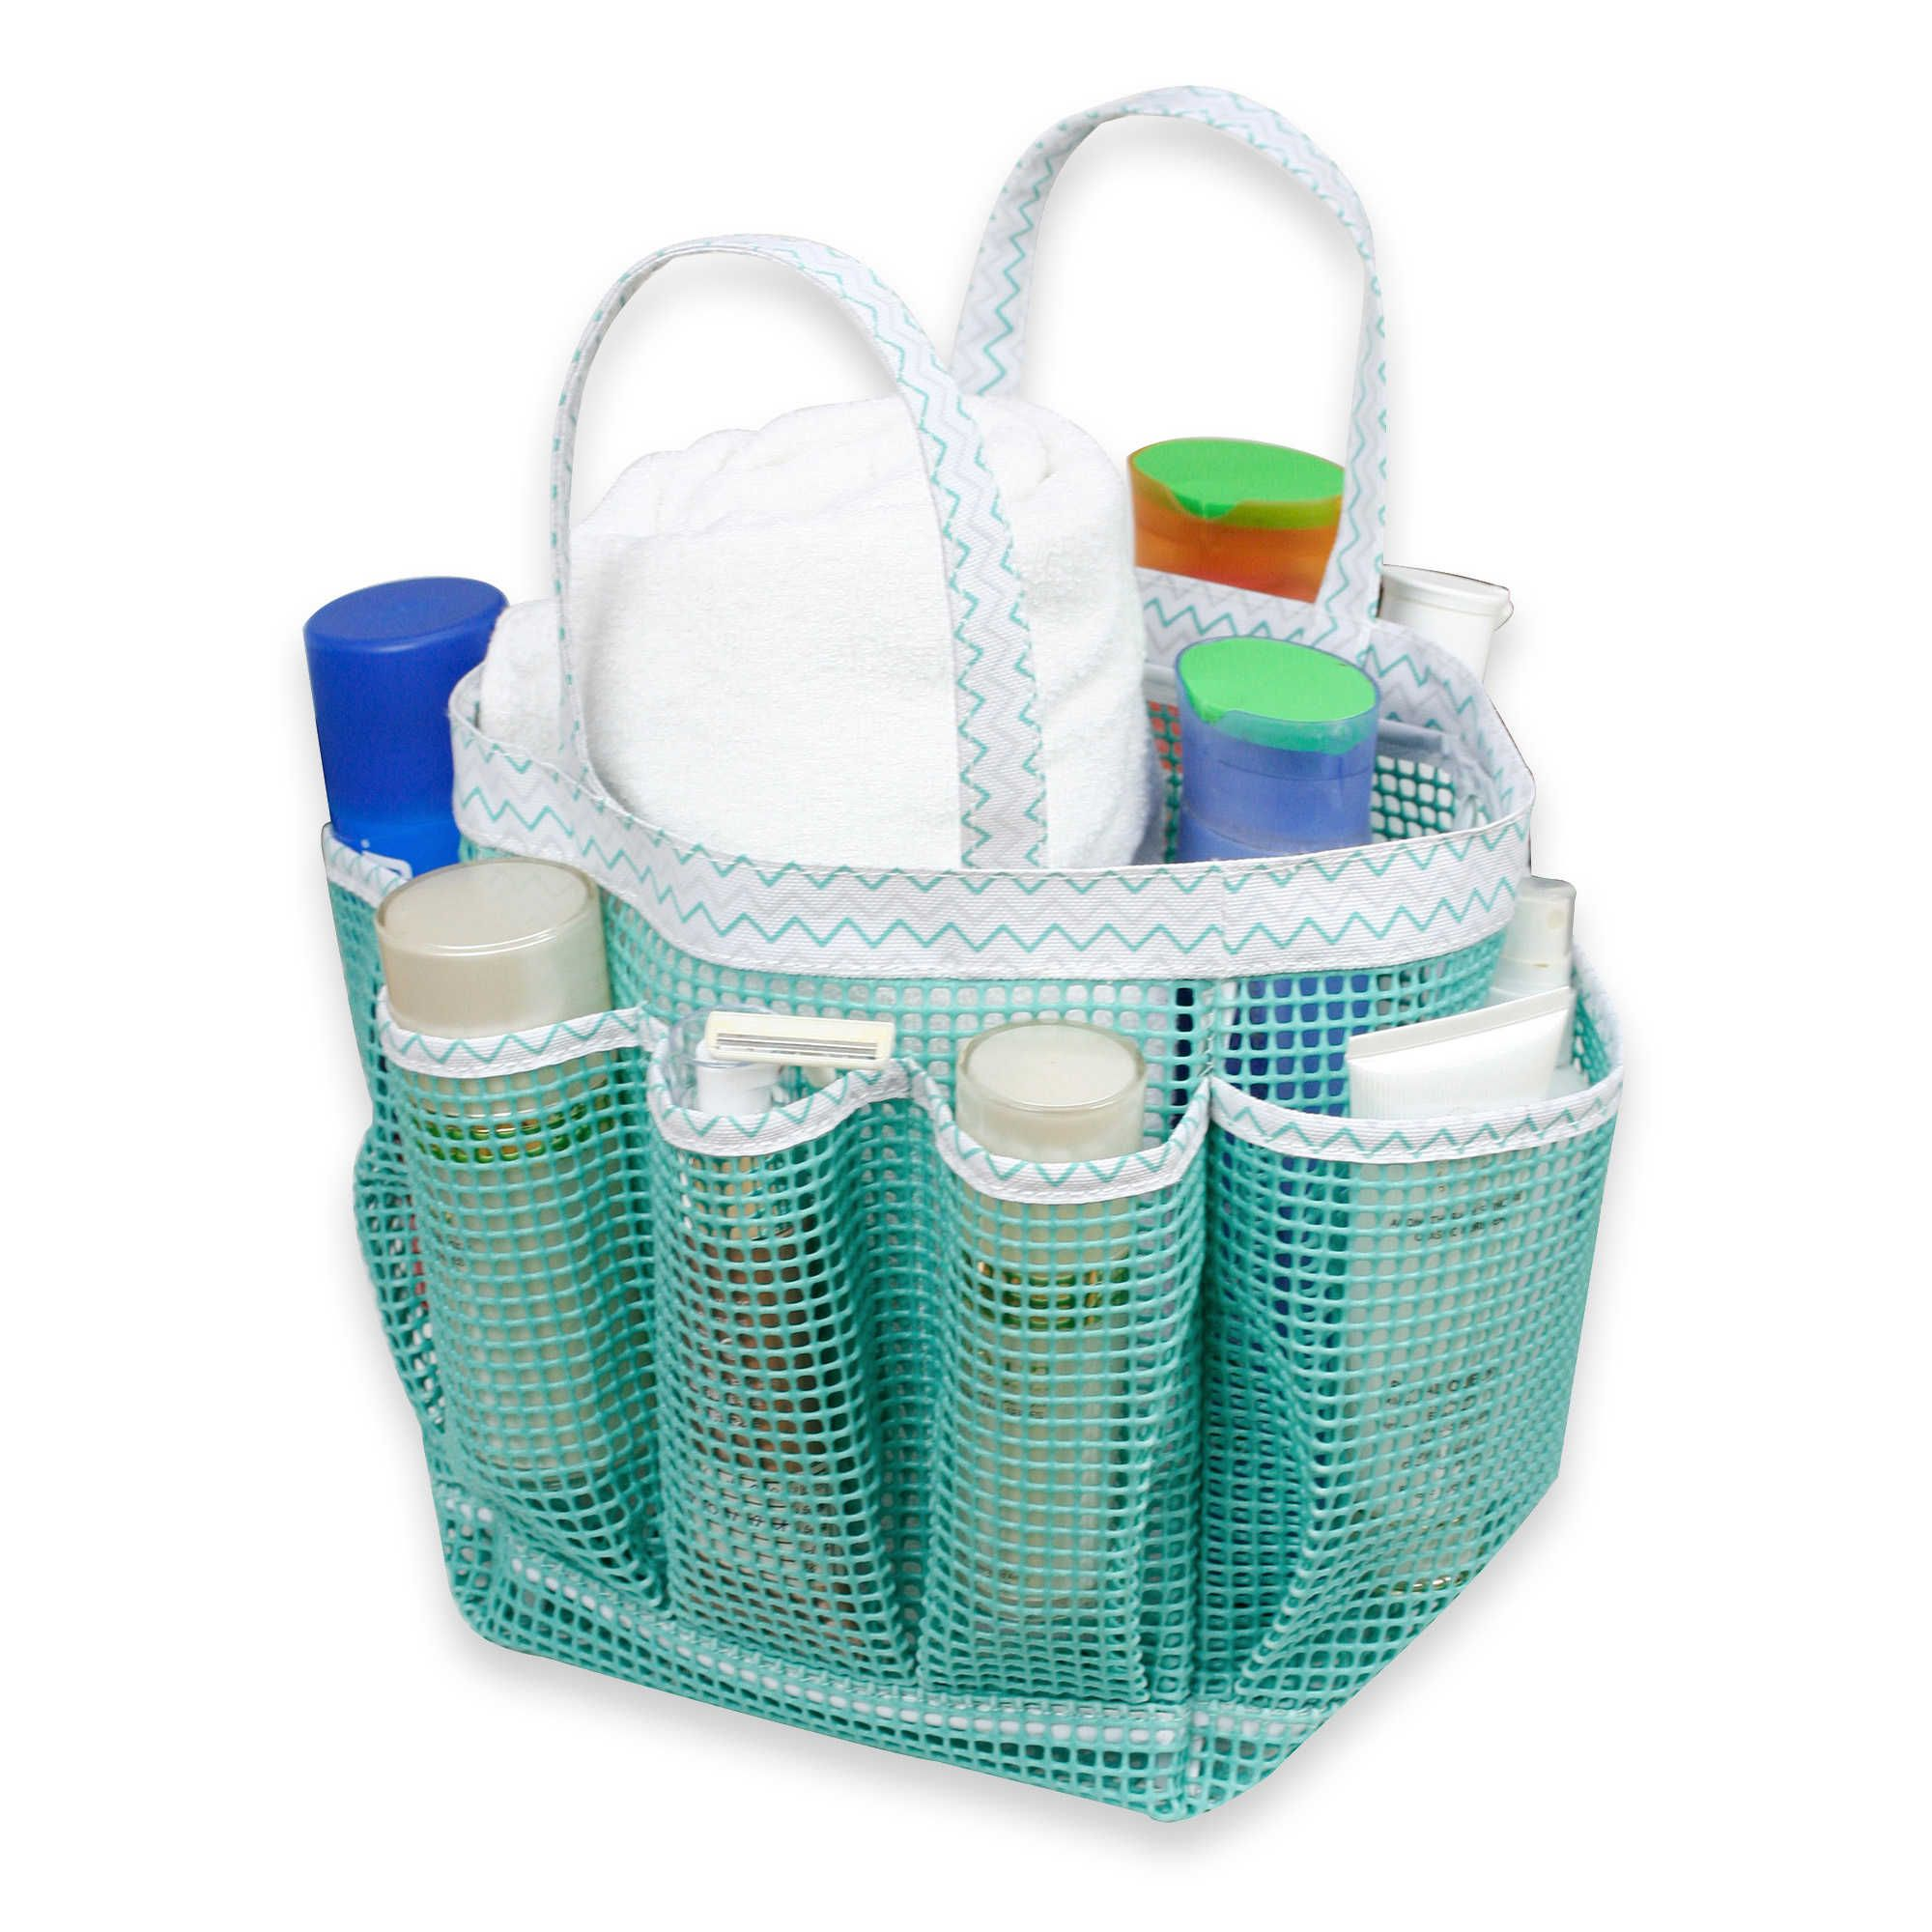 Bed Bath And Beyond Shower Caddy bed bath & beyond mesh shower tote in black | college wish list